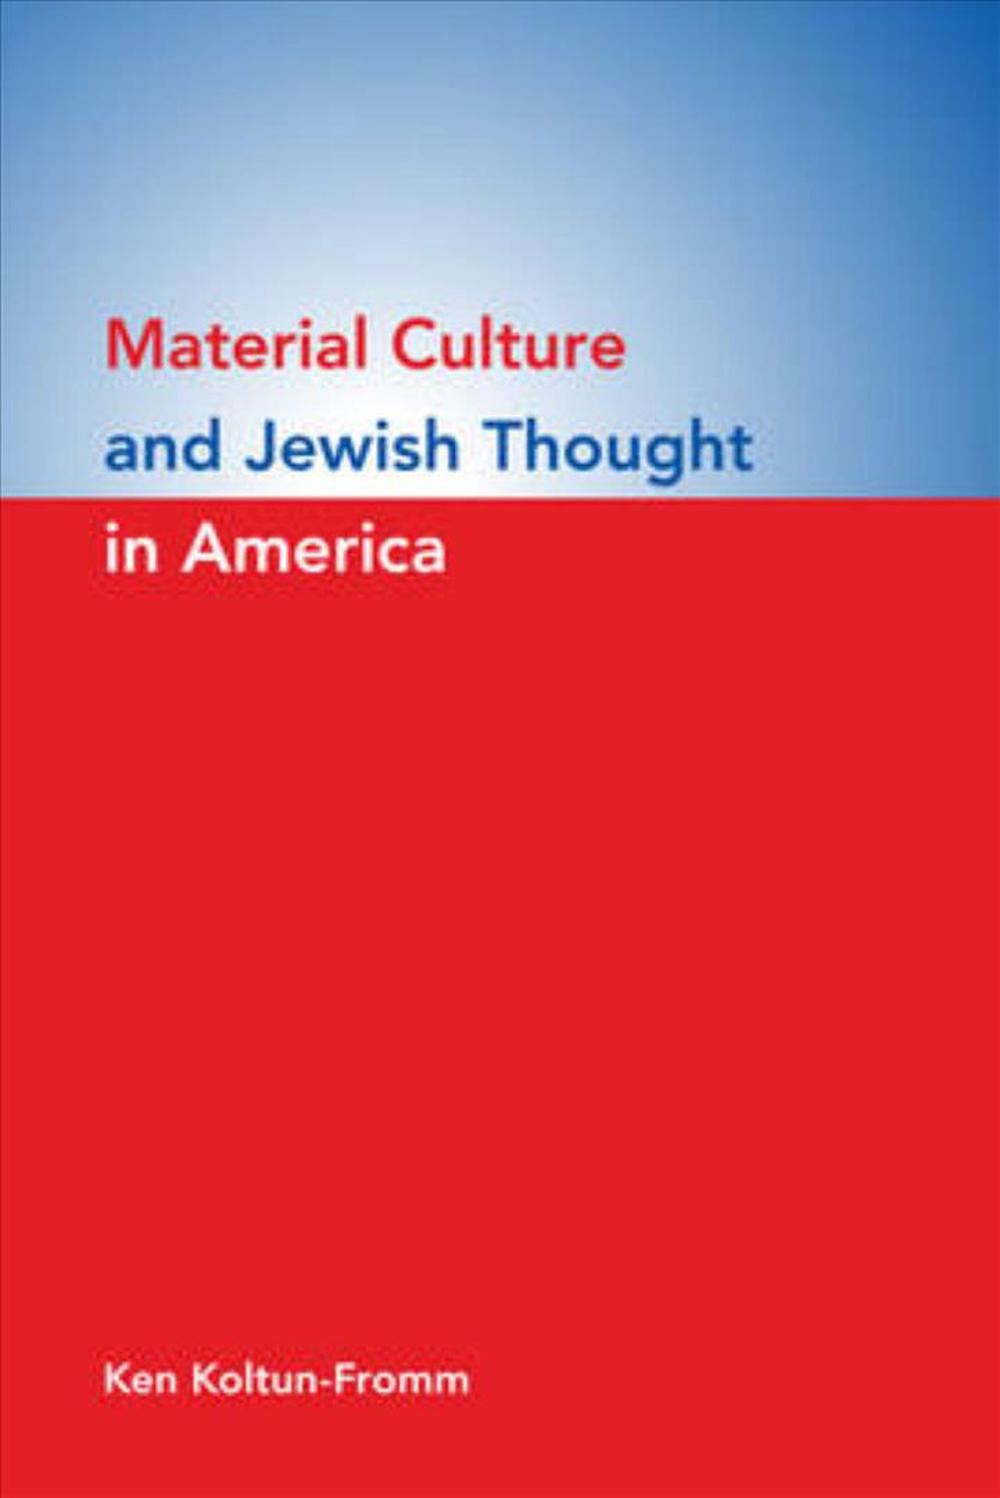 an overview of material culture in america Welcome to the fall 2012 iteration of studies in american material culture this course blog will provide a nexus for information, conversation, and other miscellany of interest to our this course will introduce you to the major themes, issues, and methods relevant to the study of material culture.